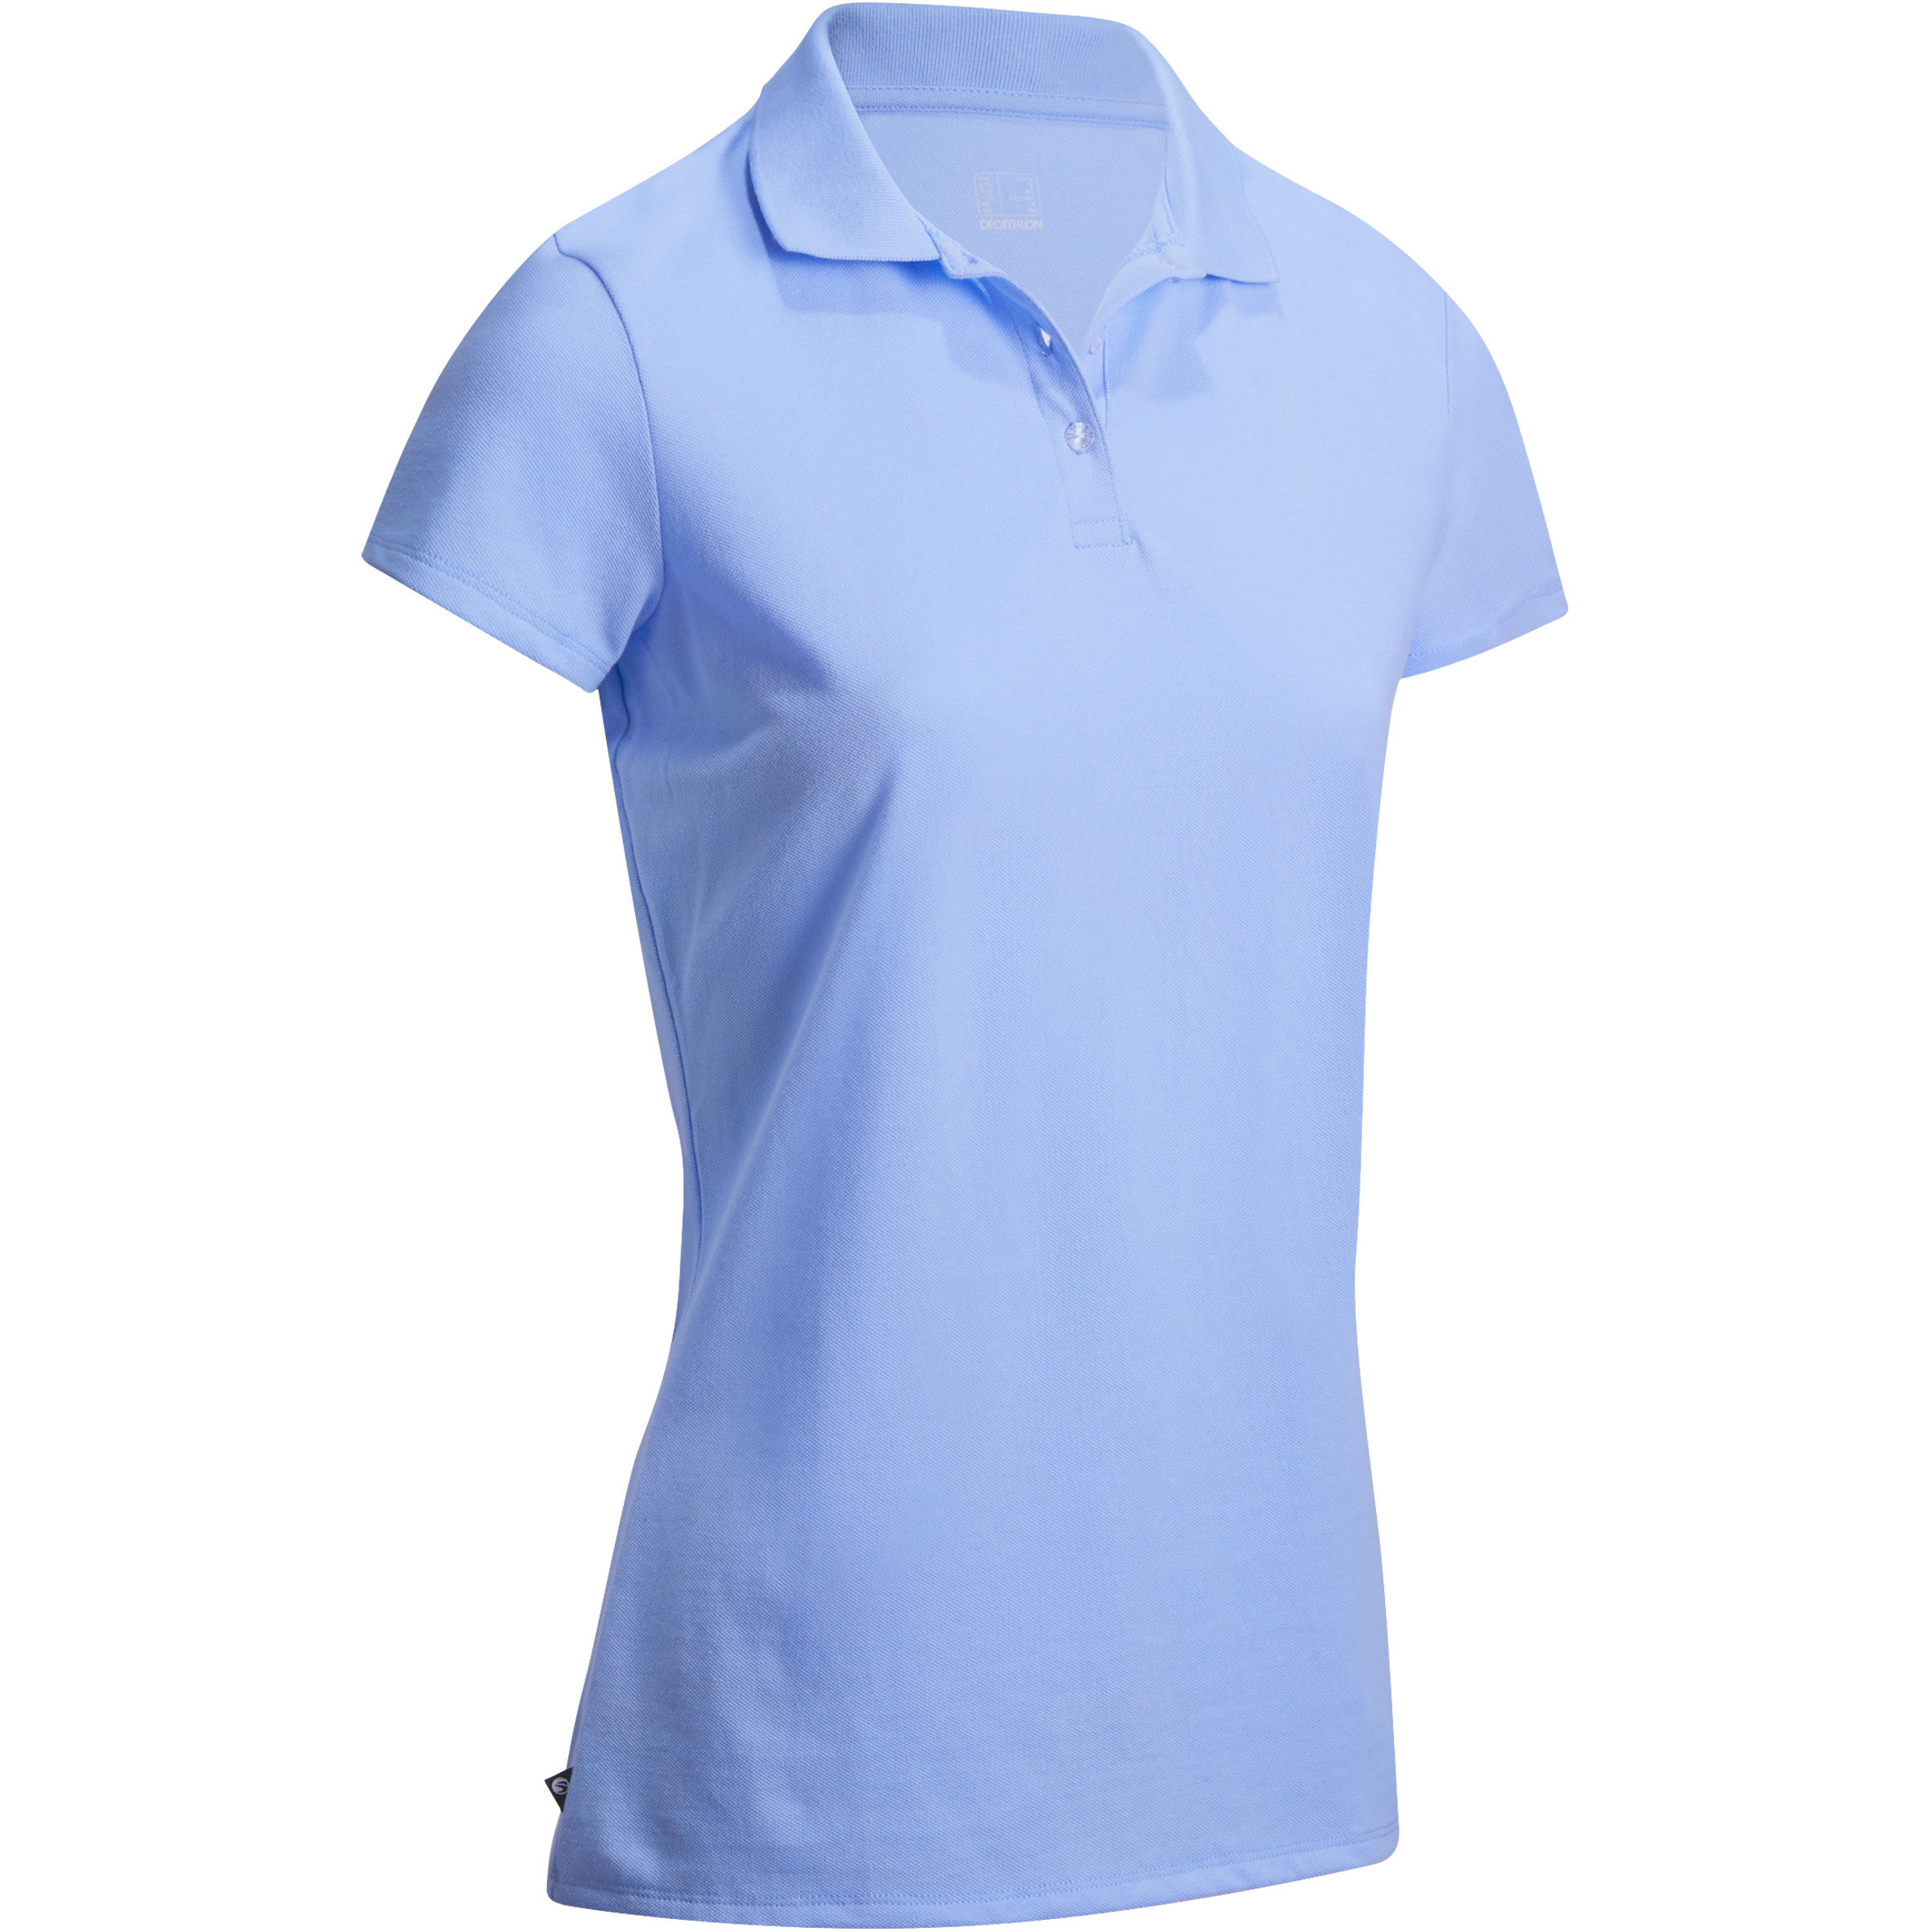 CAMISETA TIPO POLO GOLF MUJER FIRST'IN Azul claro